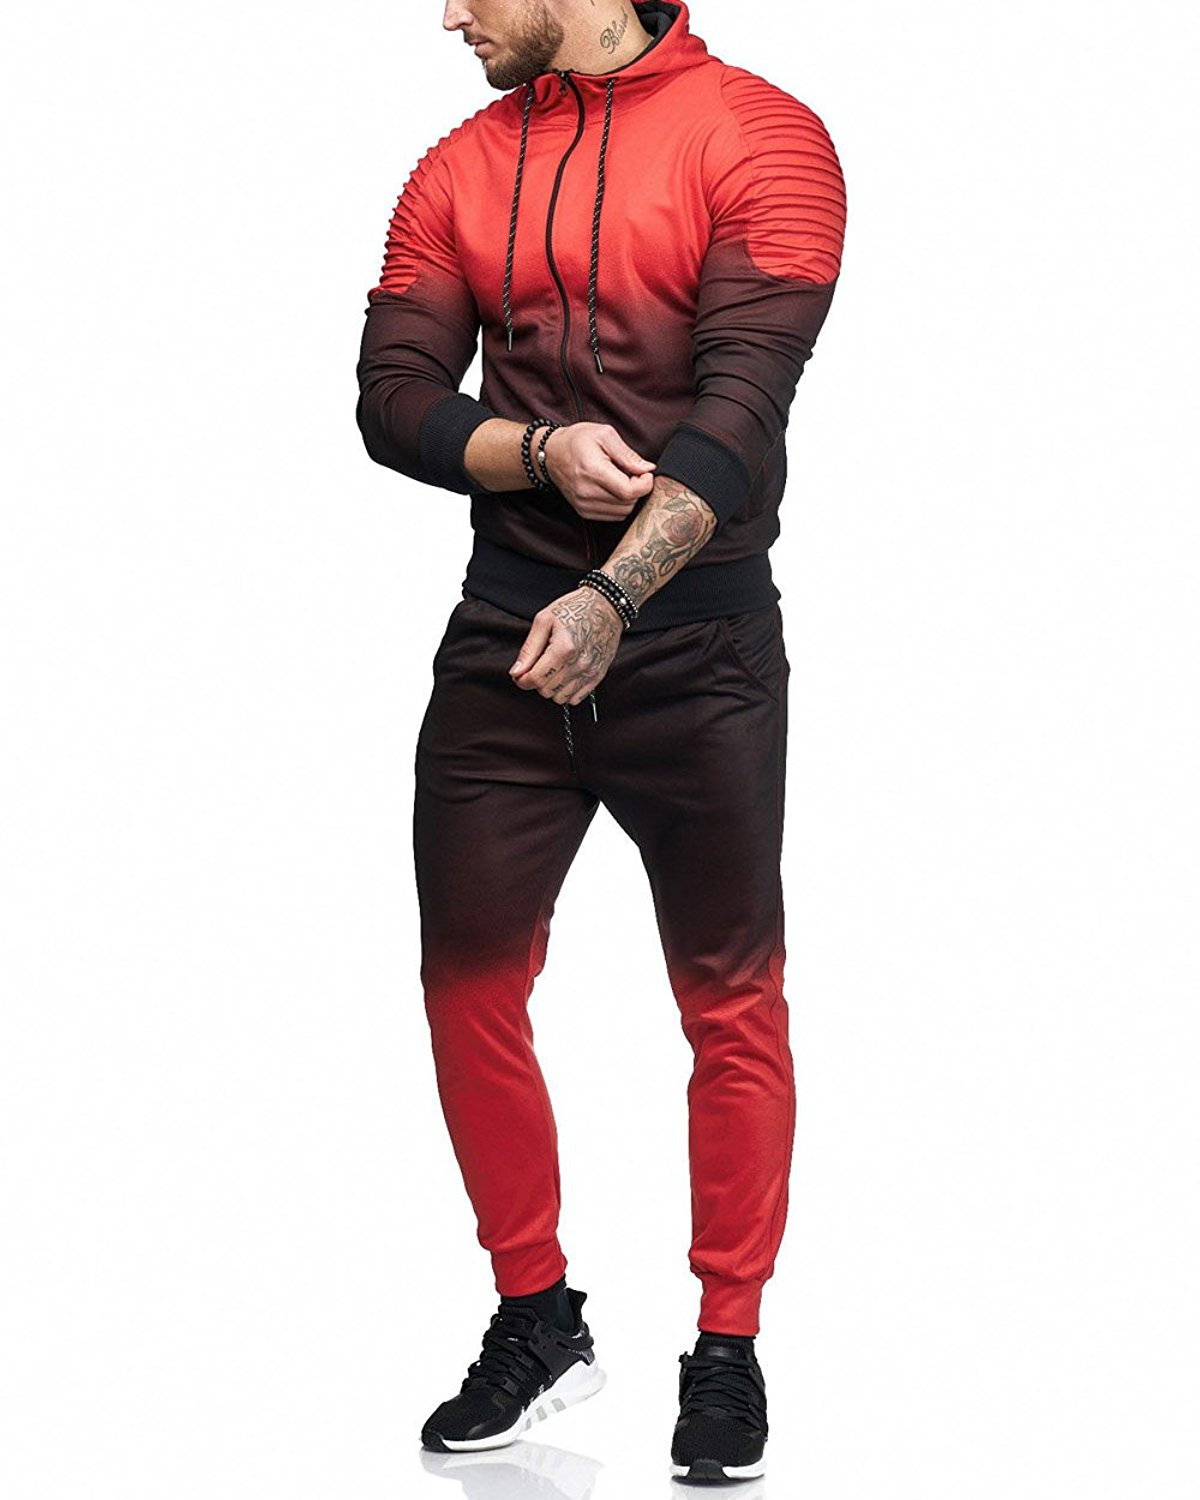 2 Pcs Set Men'S Long Sleeve Tracksuit + Low Waist Pants Jogging Autumn Workout Fitness Jacket Jogger Pants 2018 Plus Size